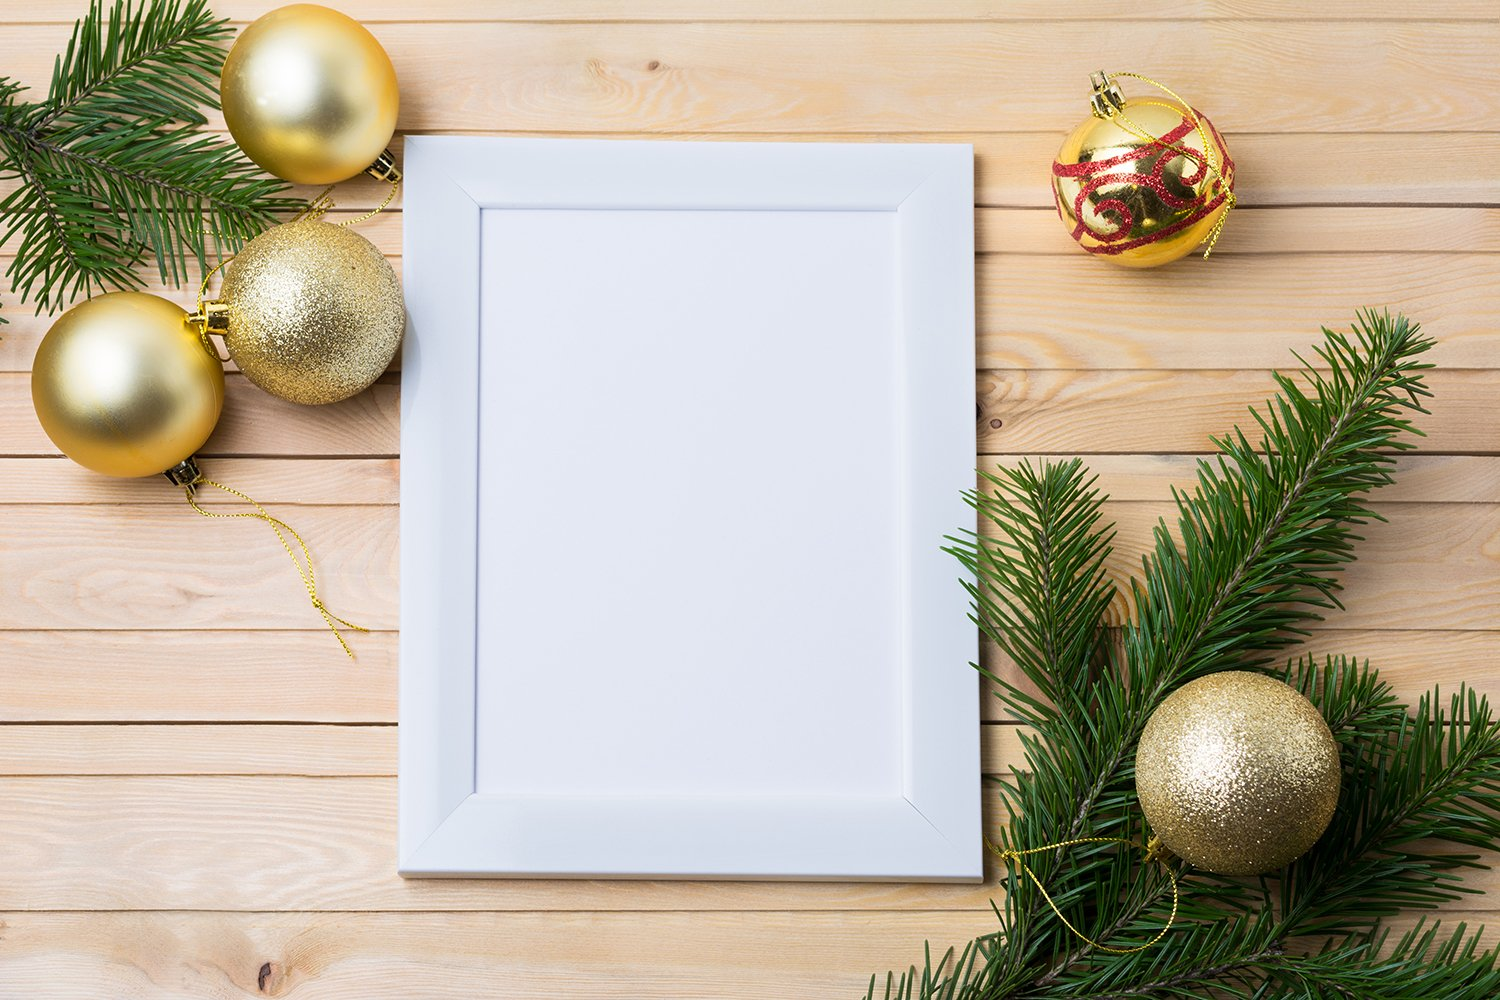 White rustic frame mockup with golden Christmas ornaments example image 2